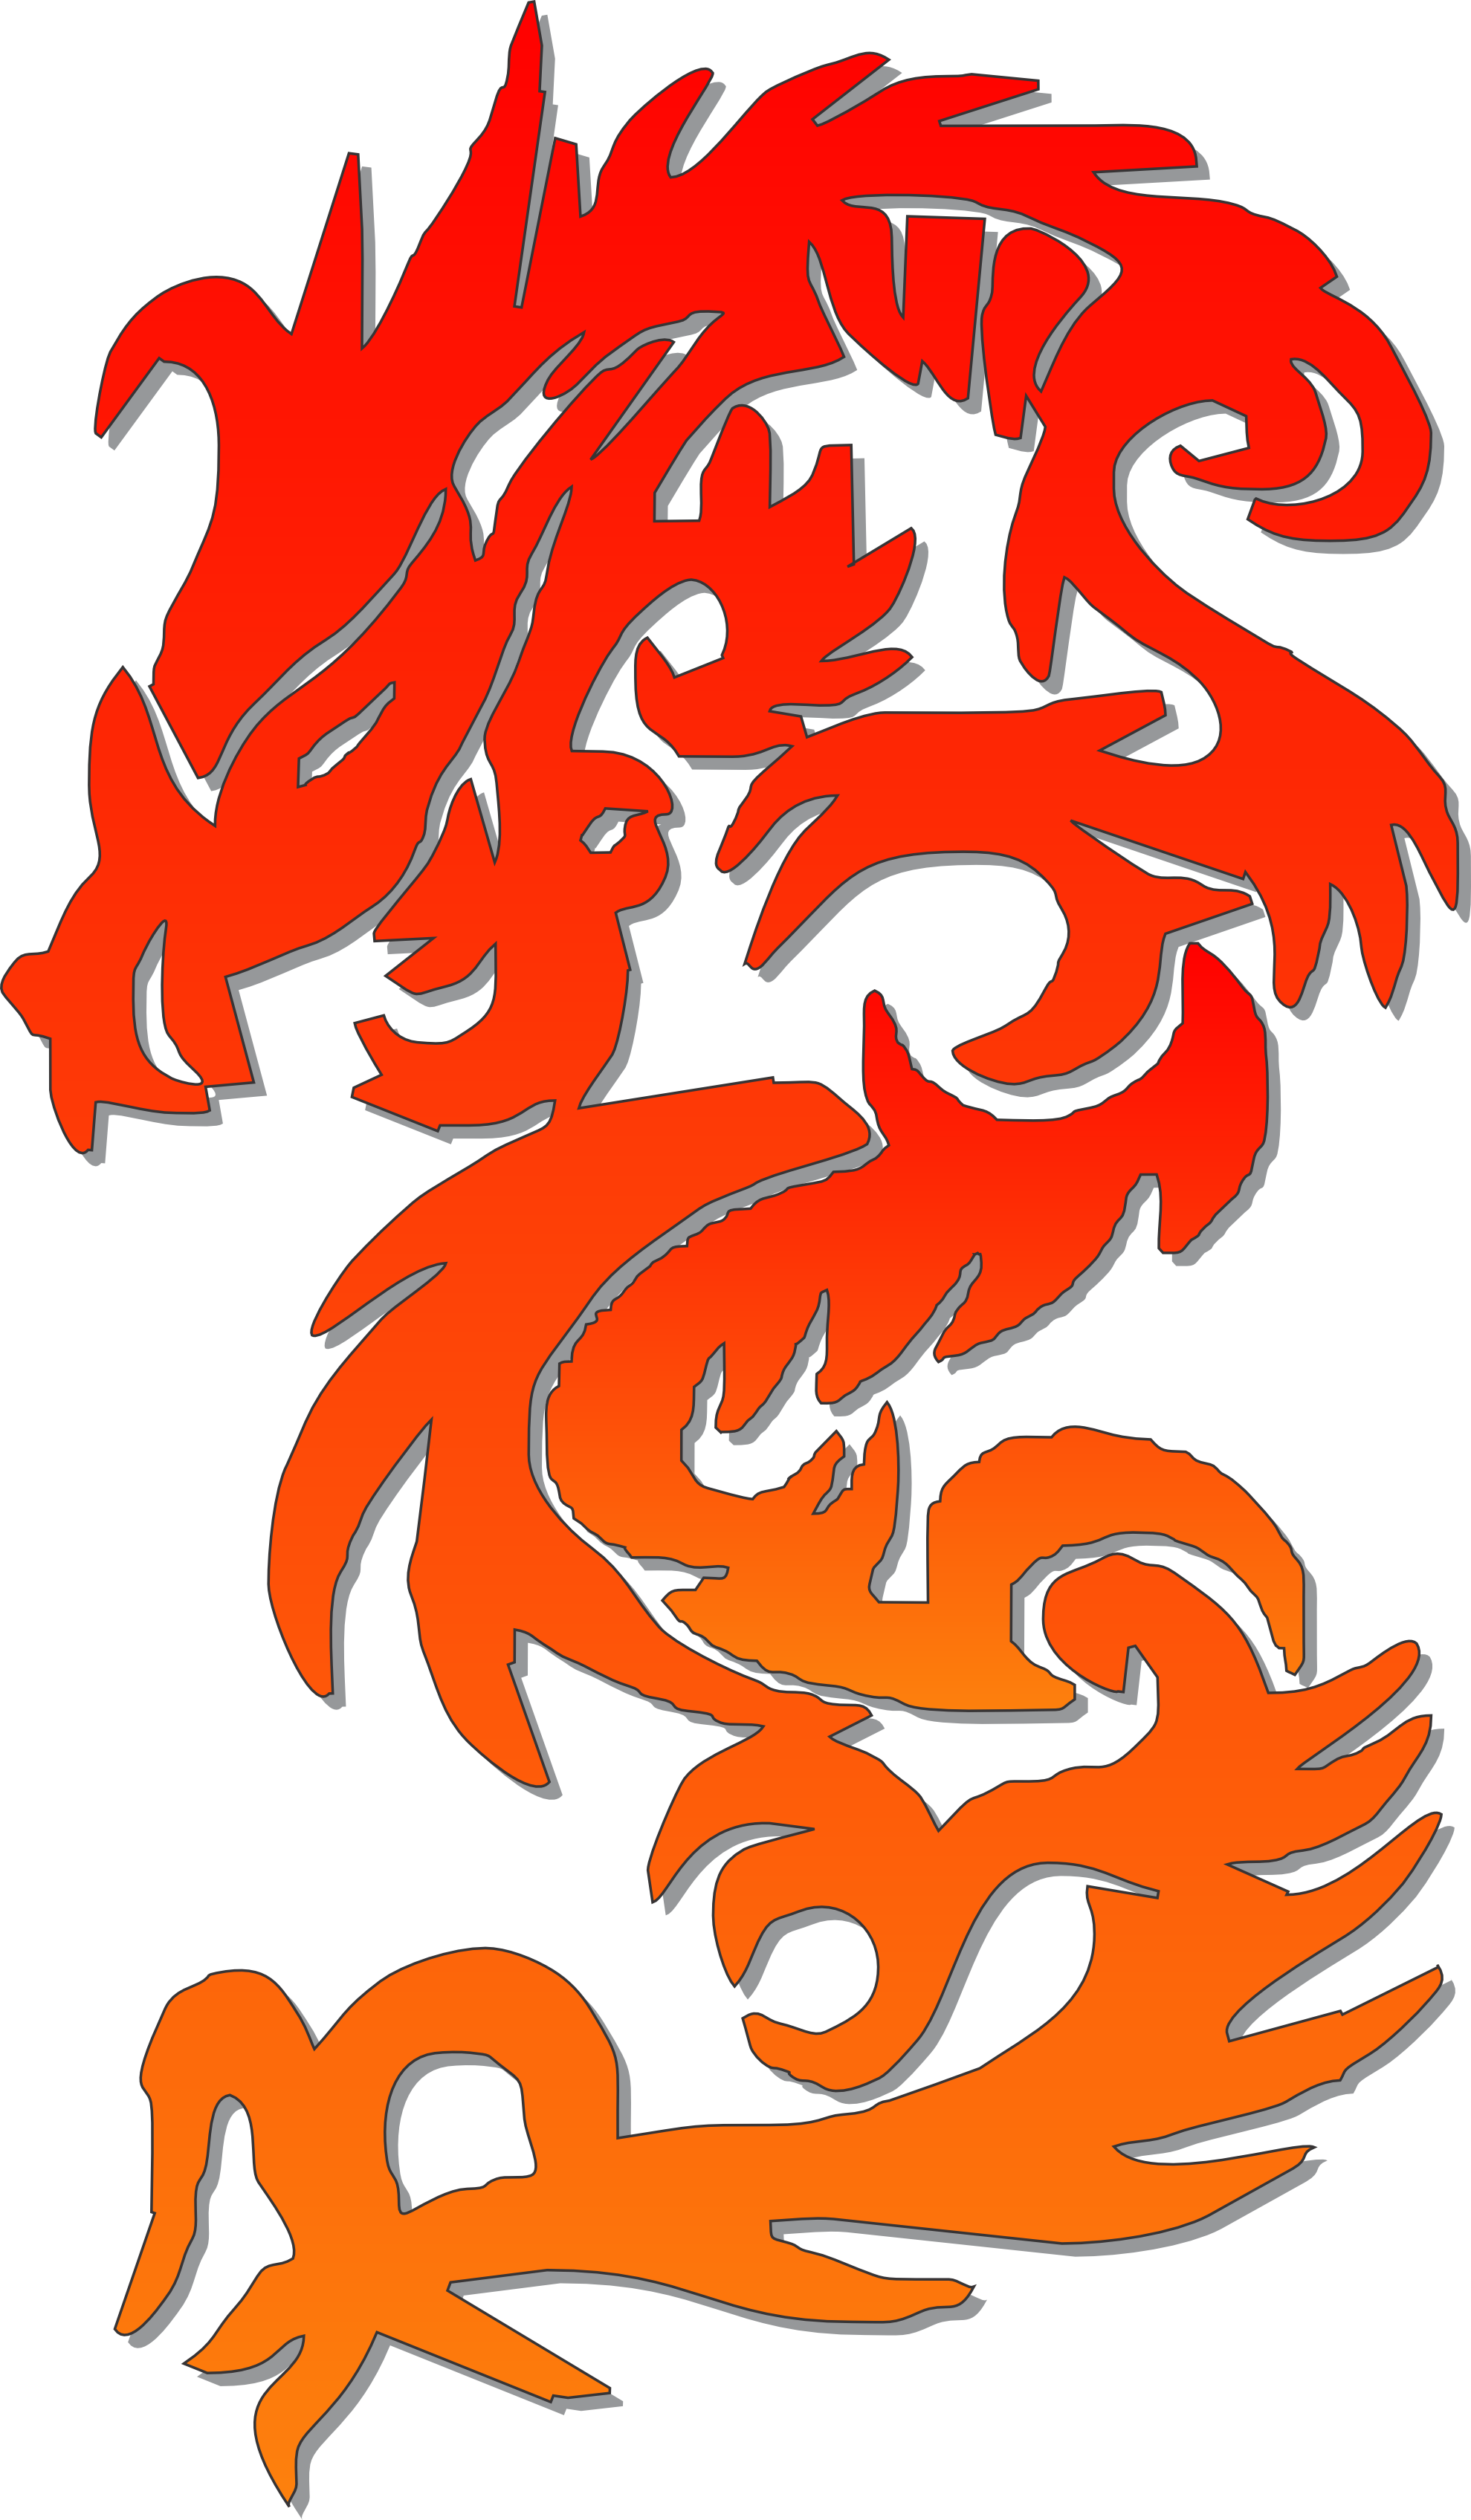 Chinese dragon png. Download pic hq image